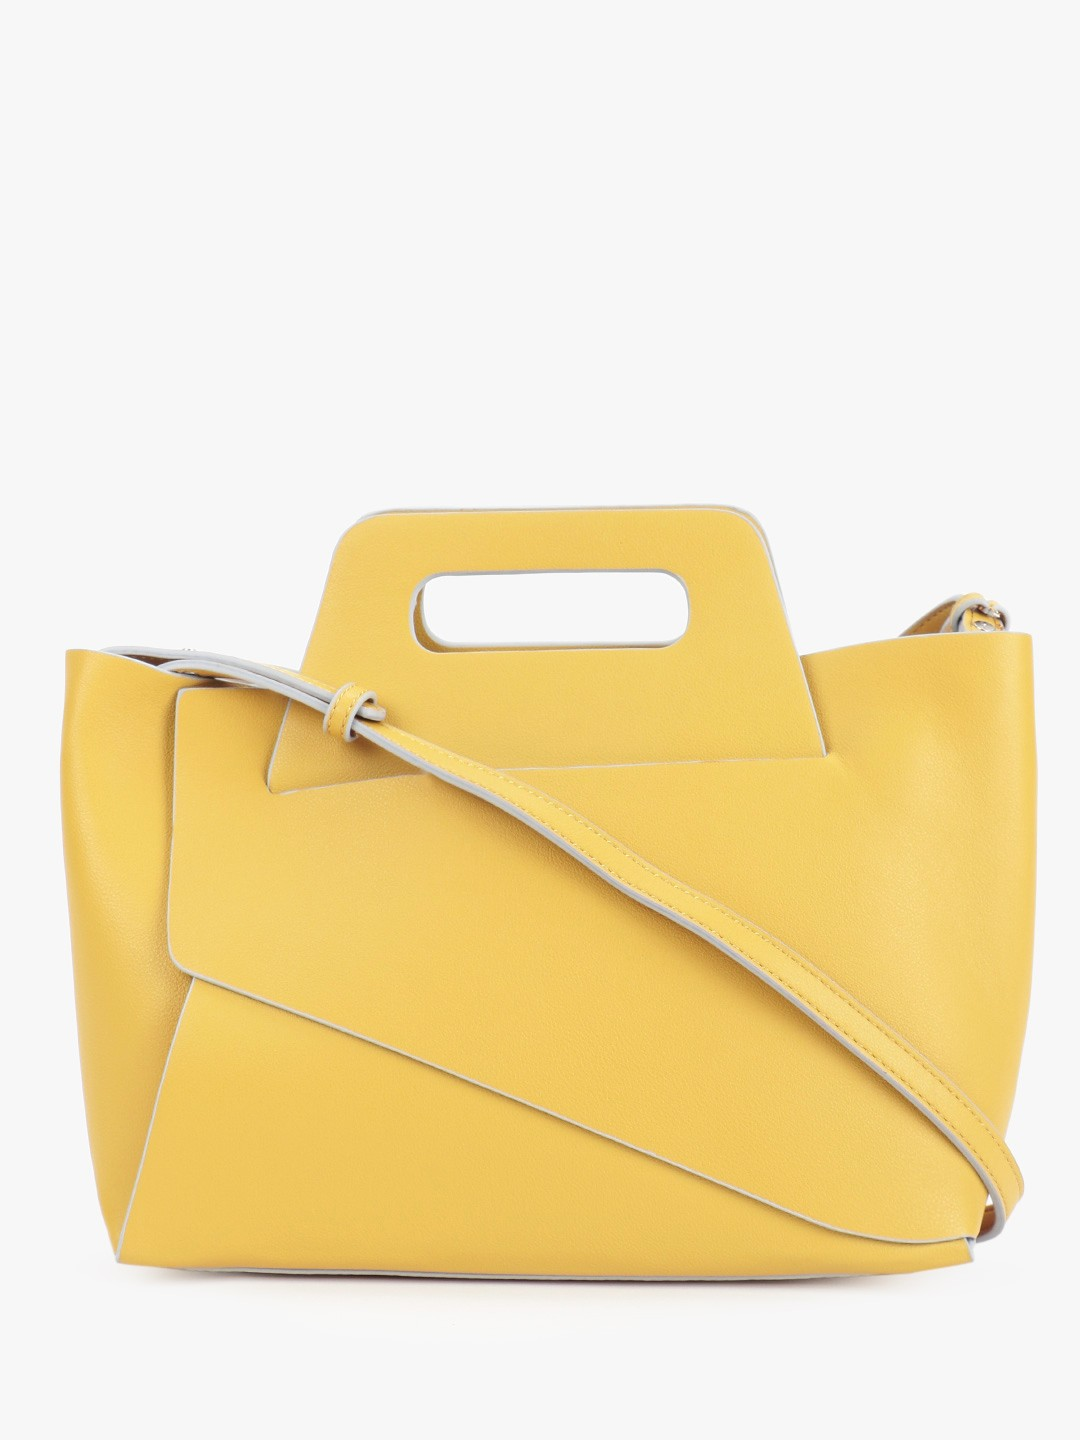 Only Yellow Structured Sling Bag 1